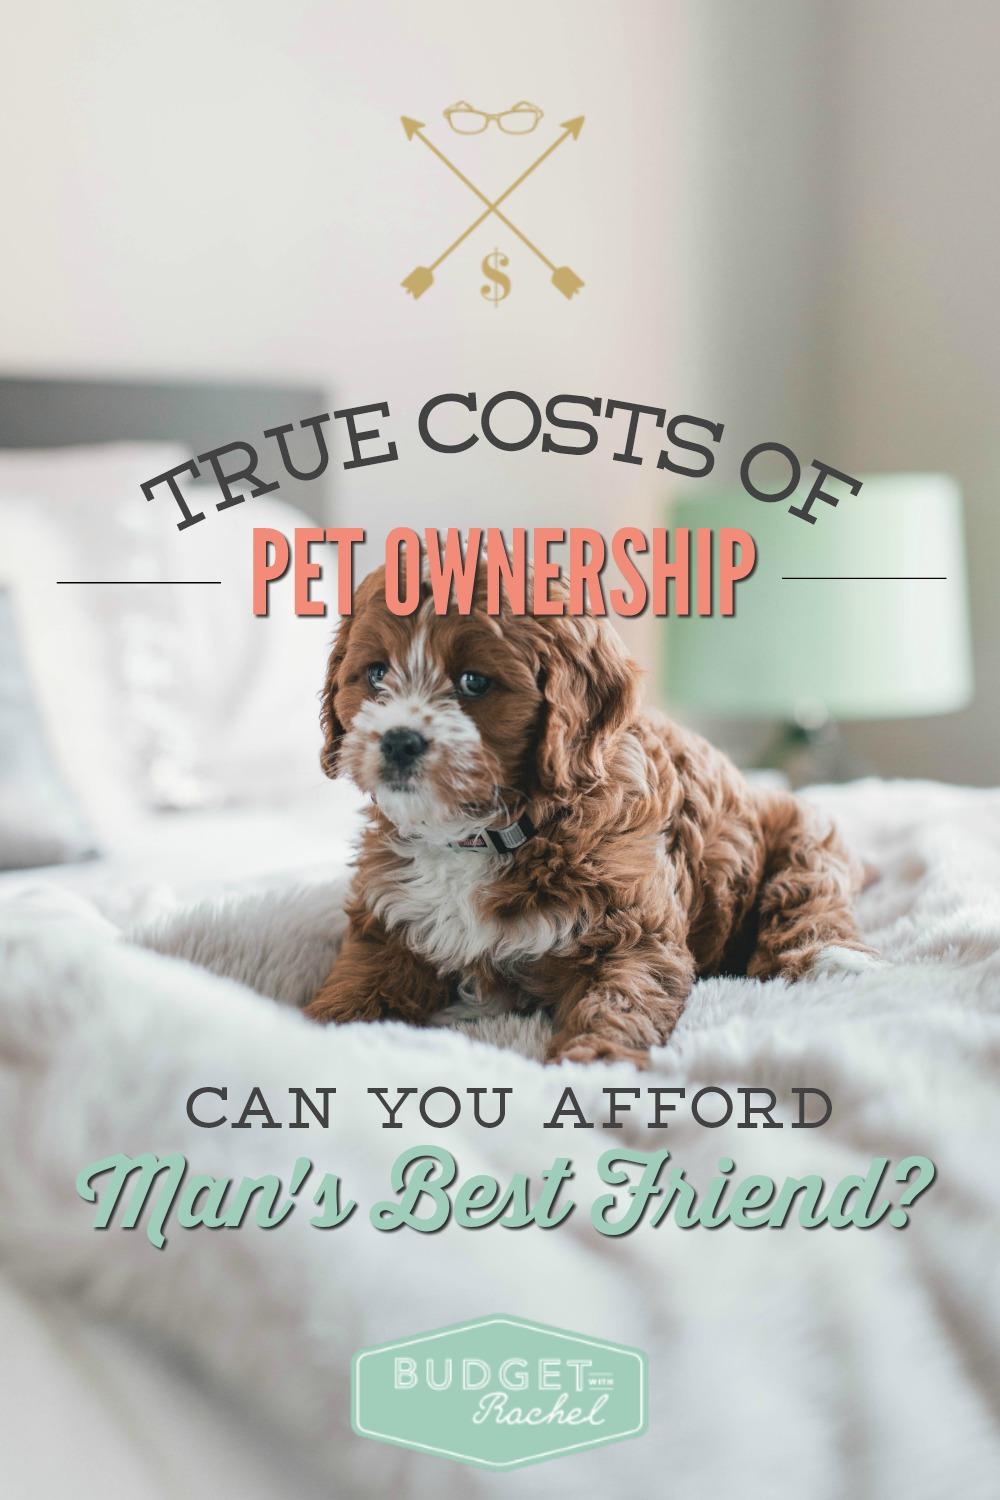 What is the True Cost of Adding a Pet to Your Family? Can You Afford Man's Best Friend? This is awesome! Everything I would need to know about possible pet costs all listed in one place! I was really surprised on the average cost of a pet, but also feel great about having a plan for our pet! Everyone should read this before getting a new cat or dog!! It will save you so much stress!